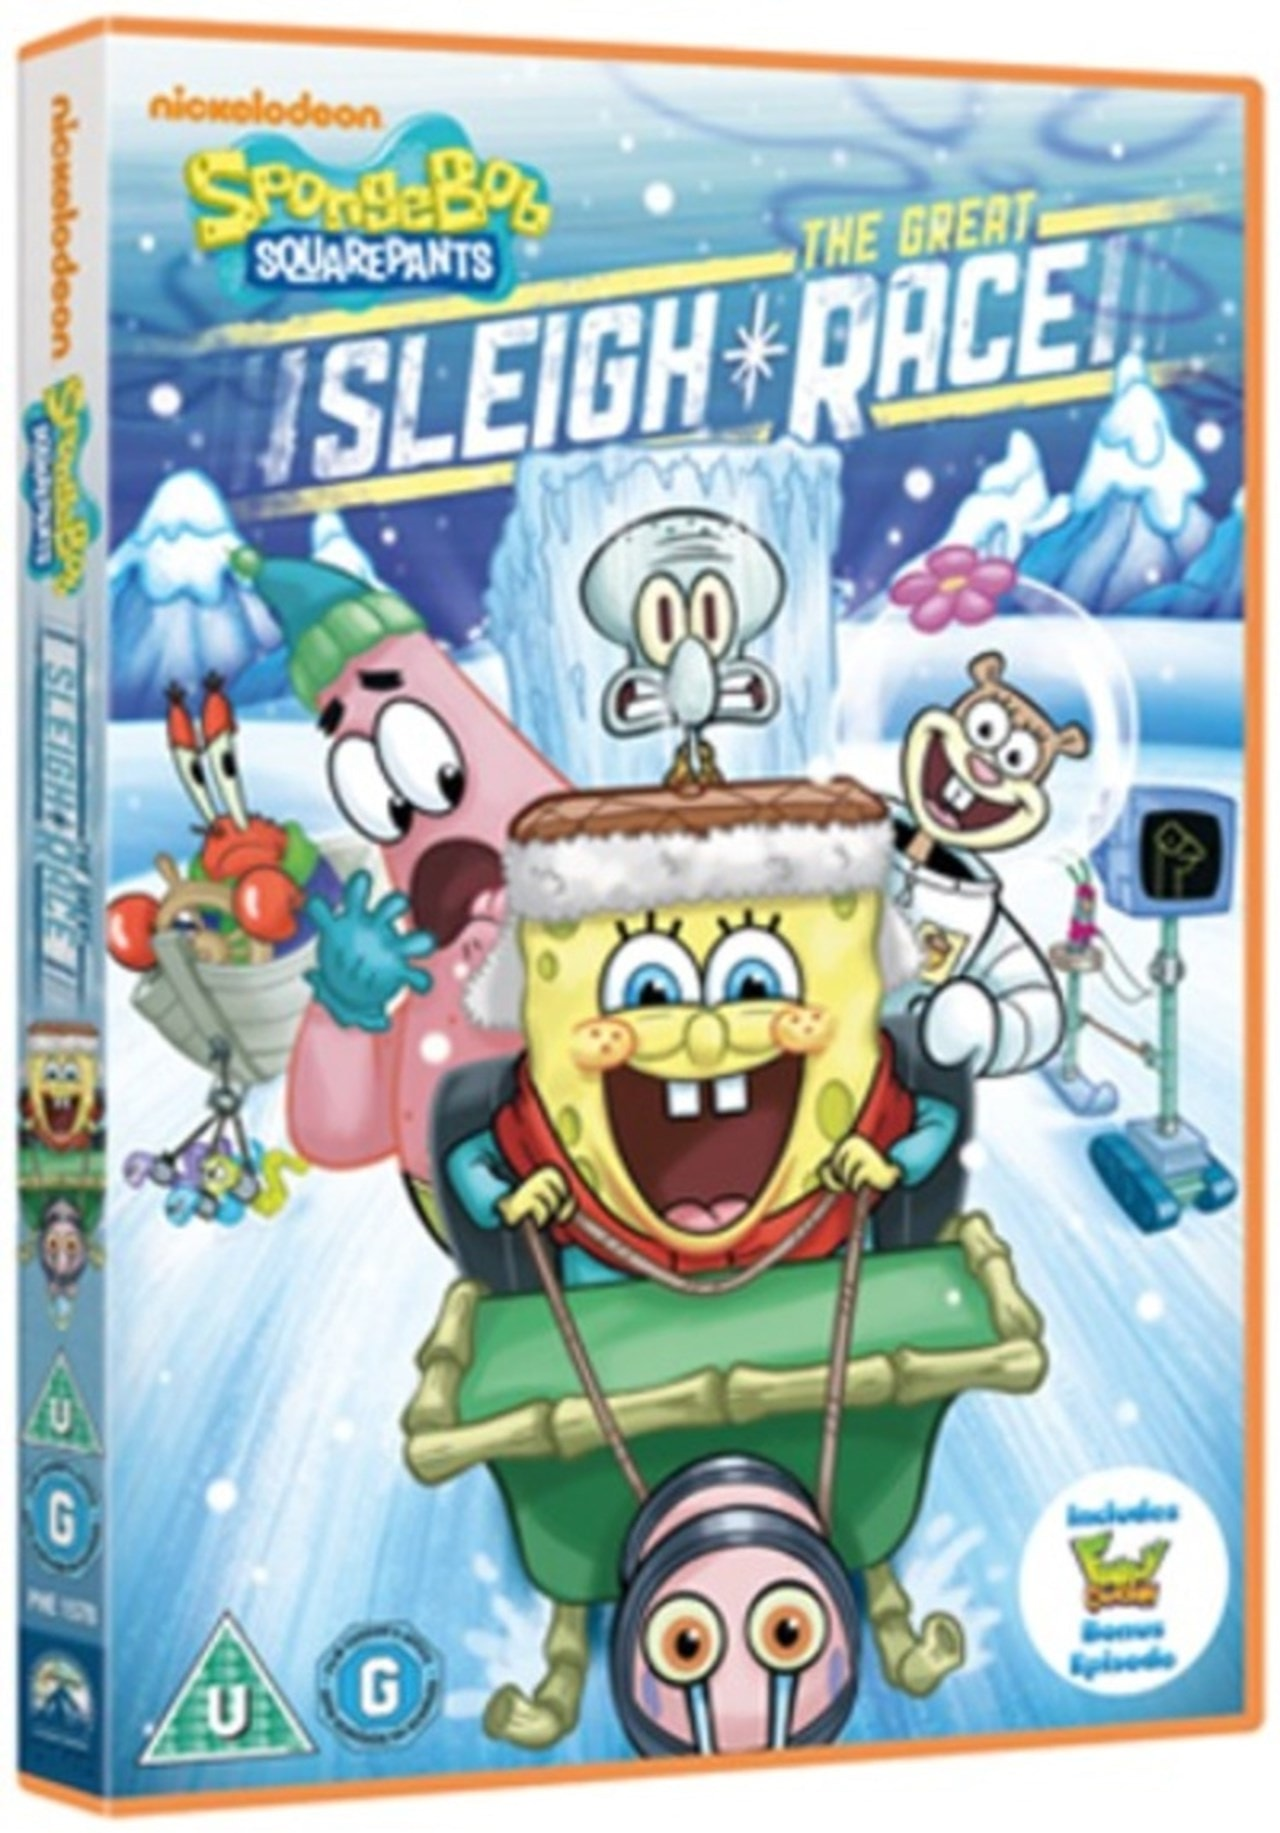 SpongeBob Squarepants: The Great Sleigh Race - 1